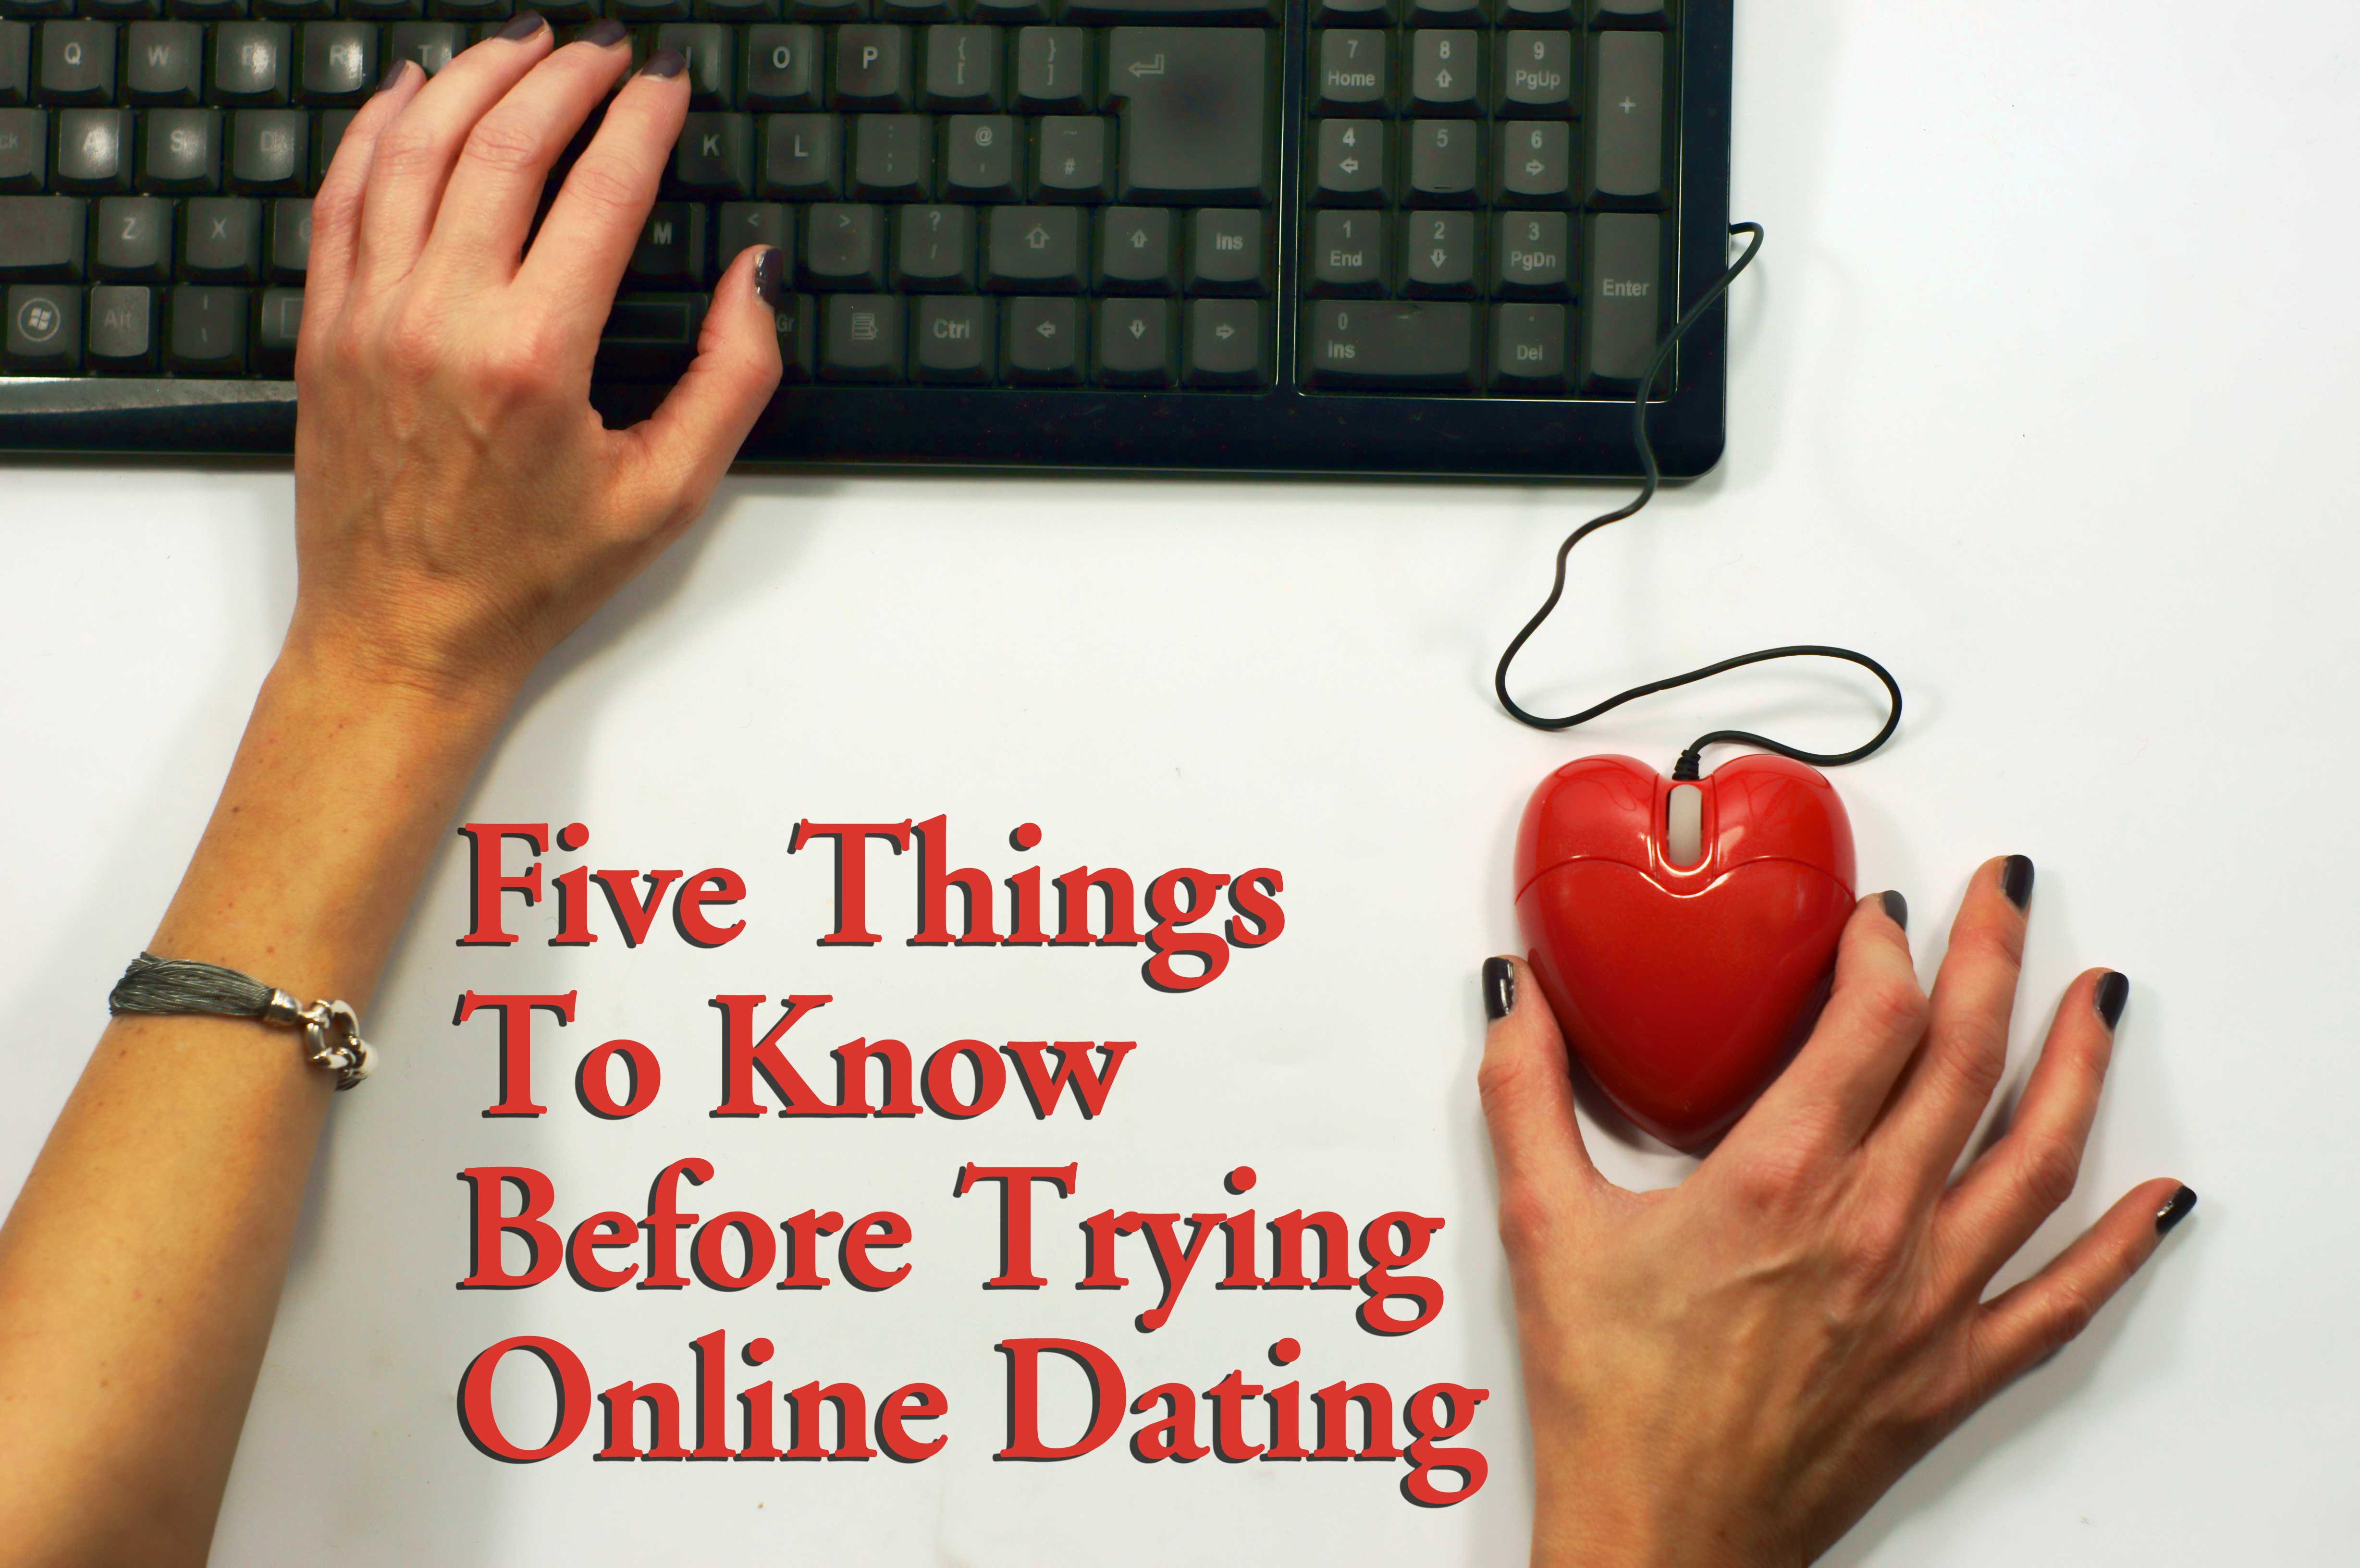 4 Tips For Your First Time Online Dating